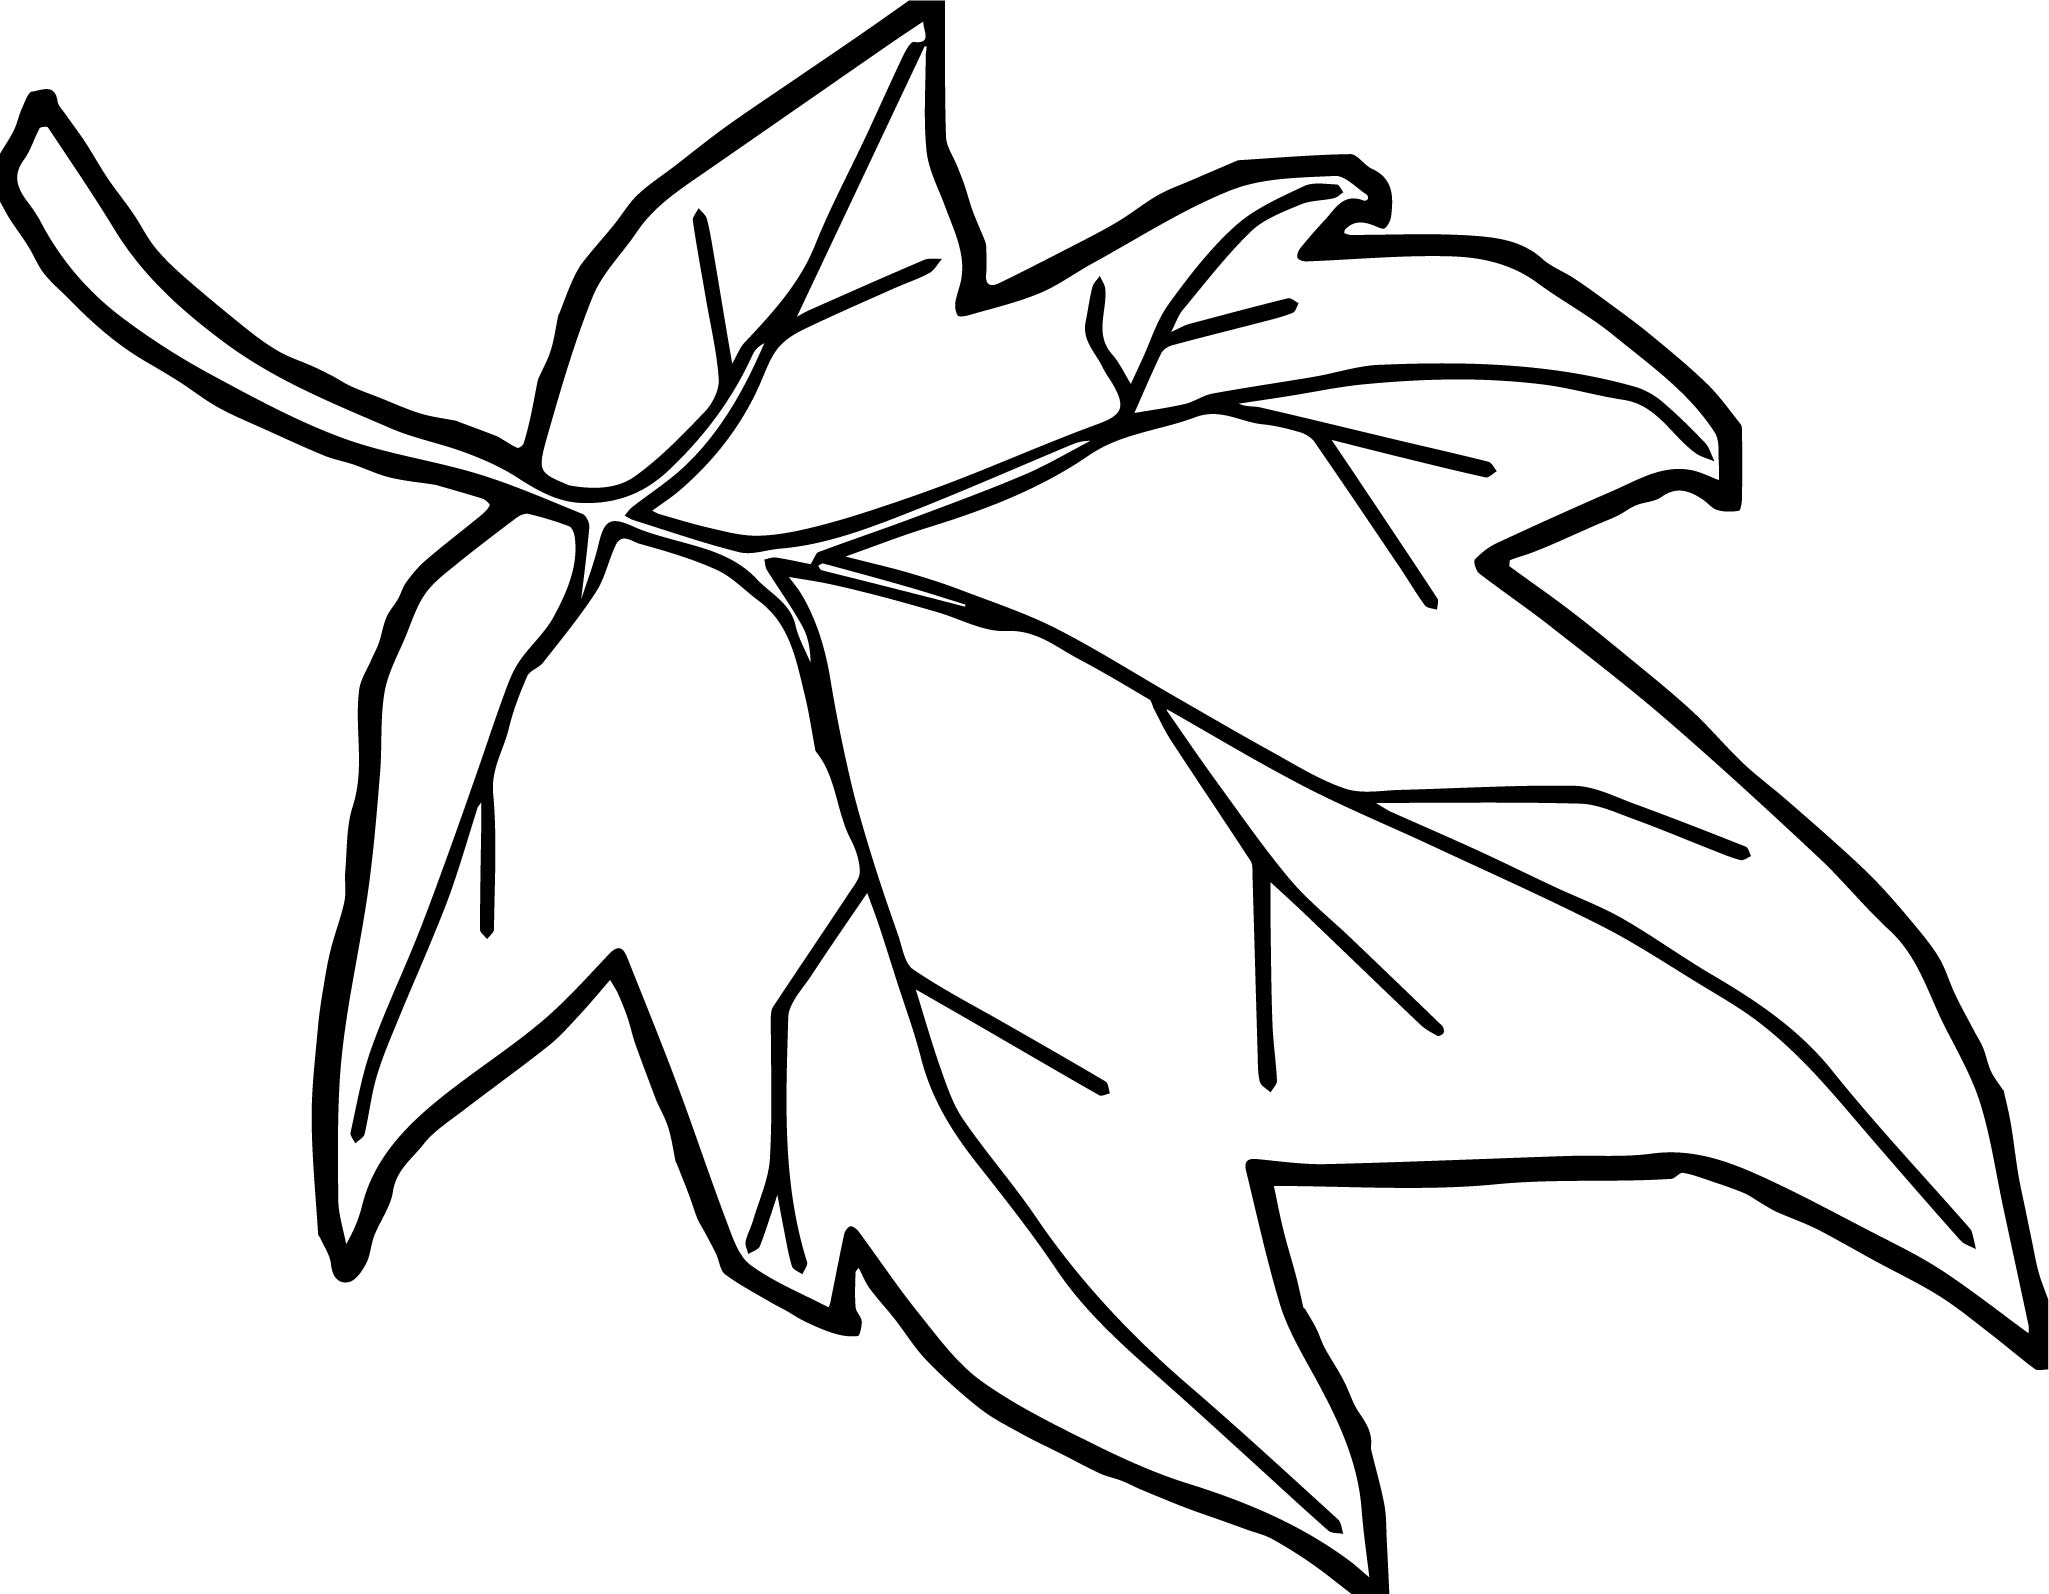 Leaves Coloring Pages Orange Autumn Leaf Coloring Page  Wecoloringpage